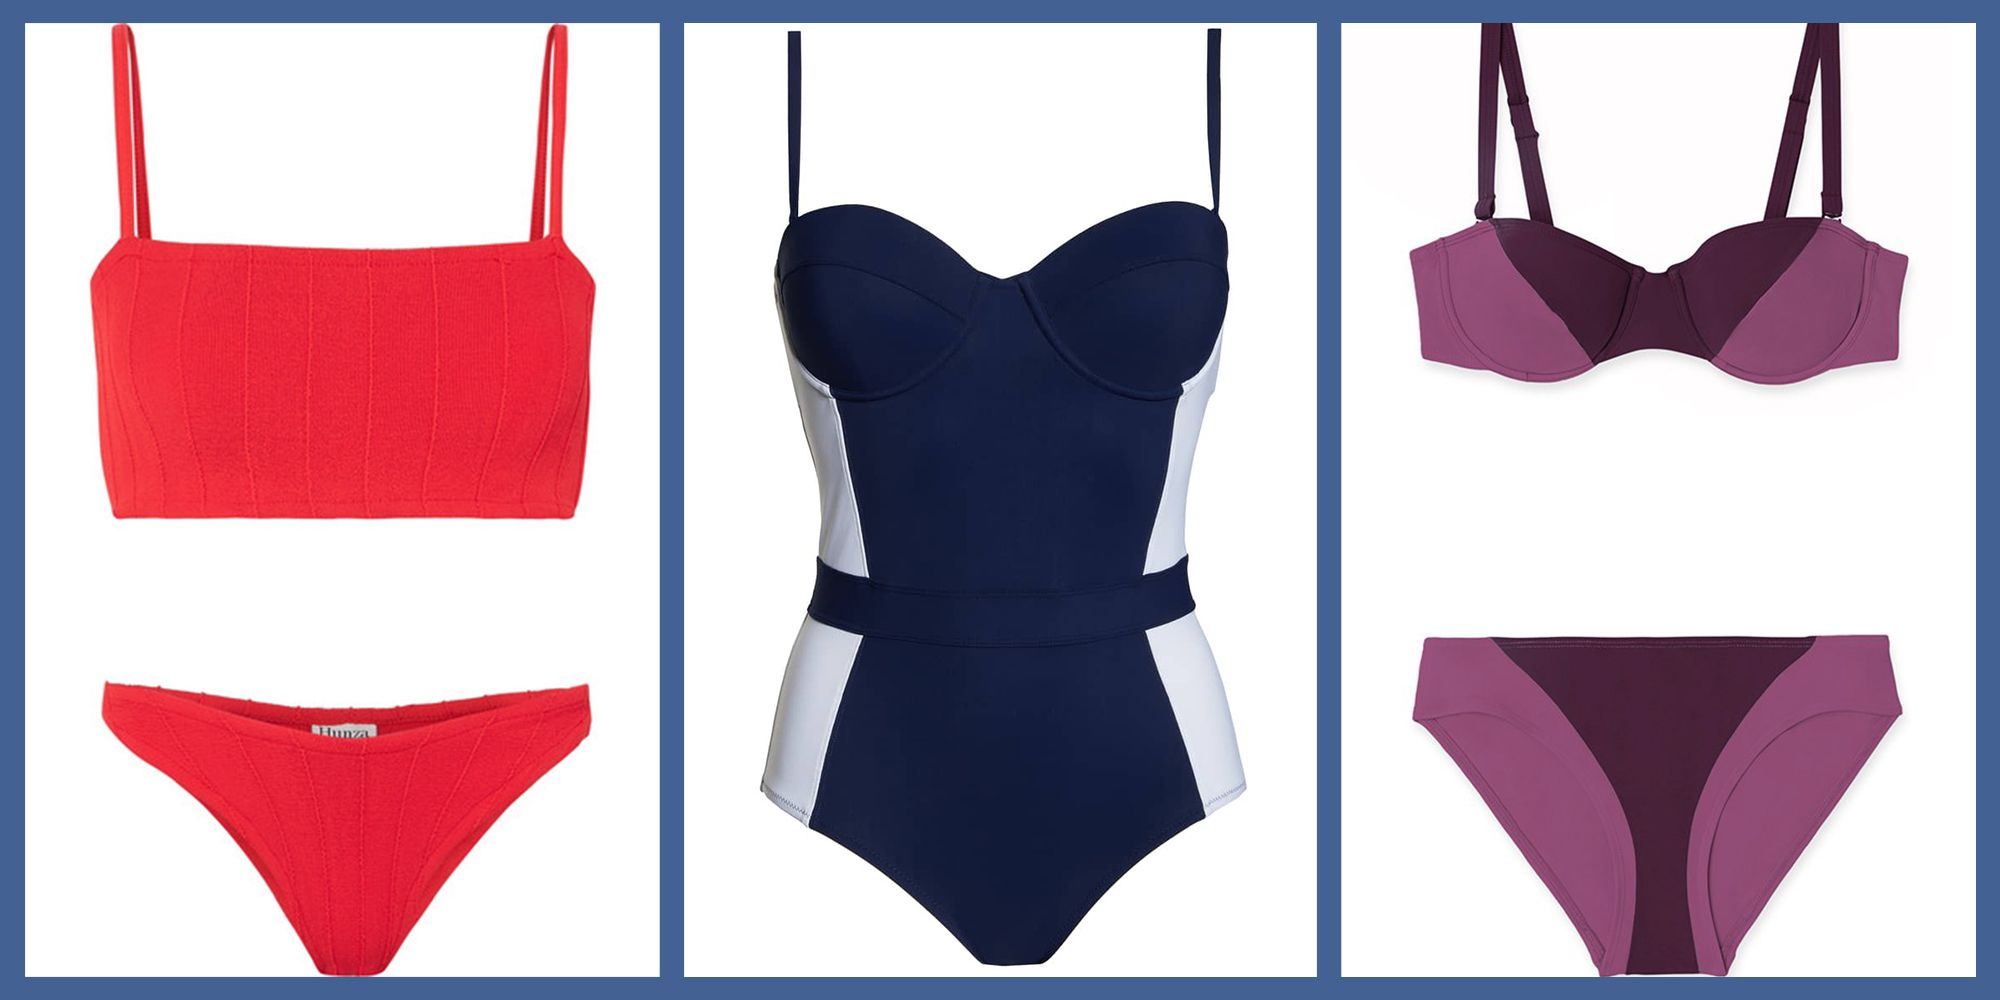 9696d0a5ef 16 Best Swimsuits for Women 2019 - Top Places to Buy Designer Swimwear